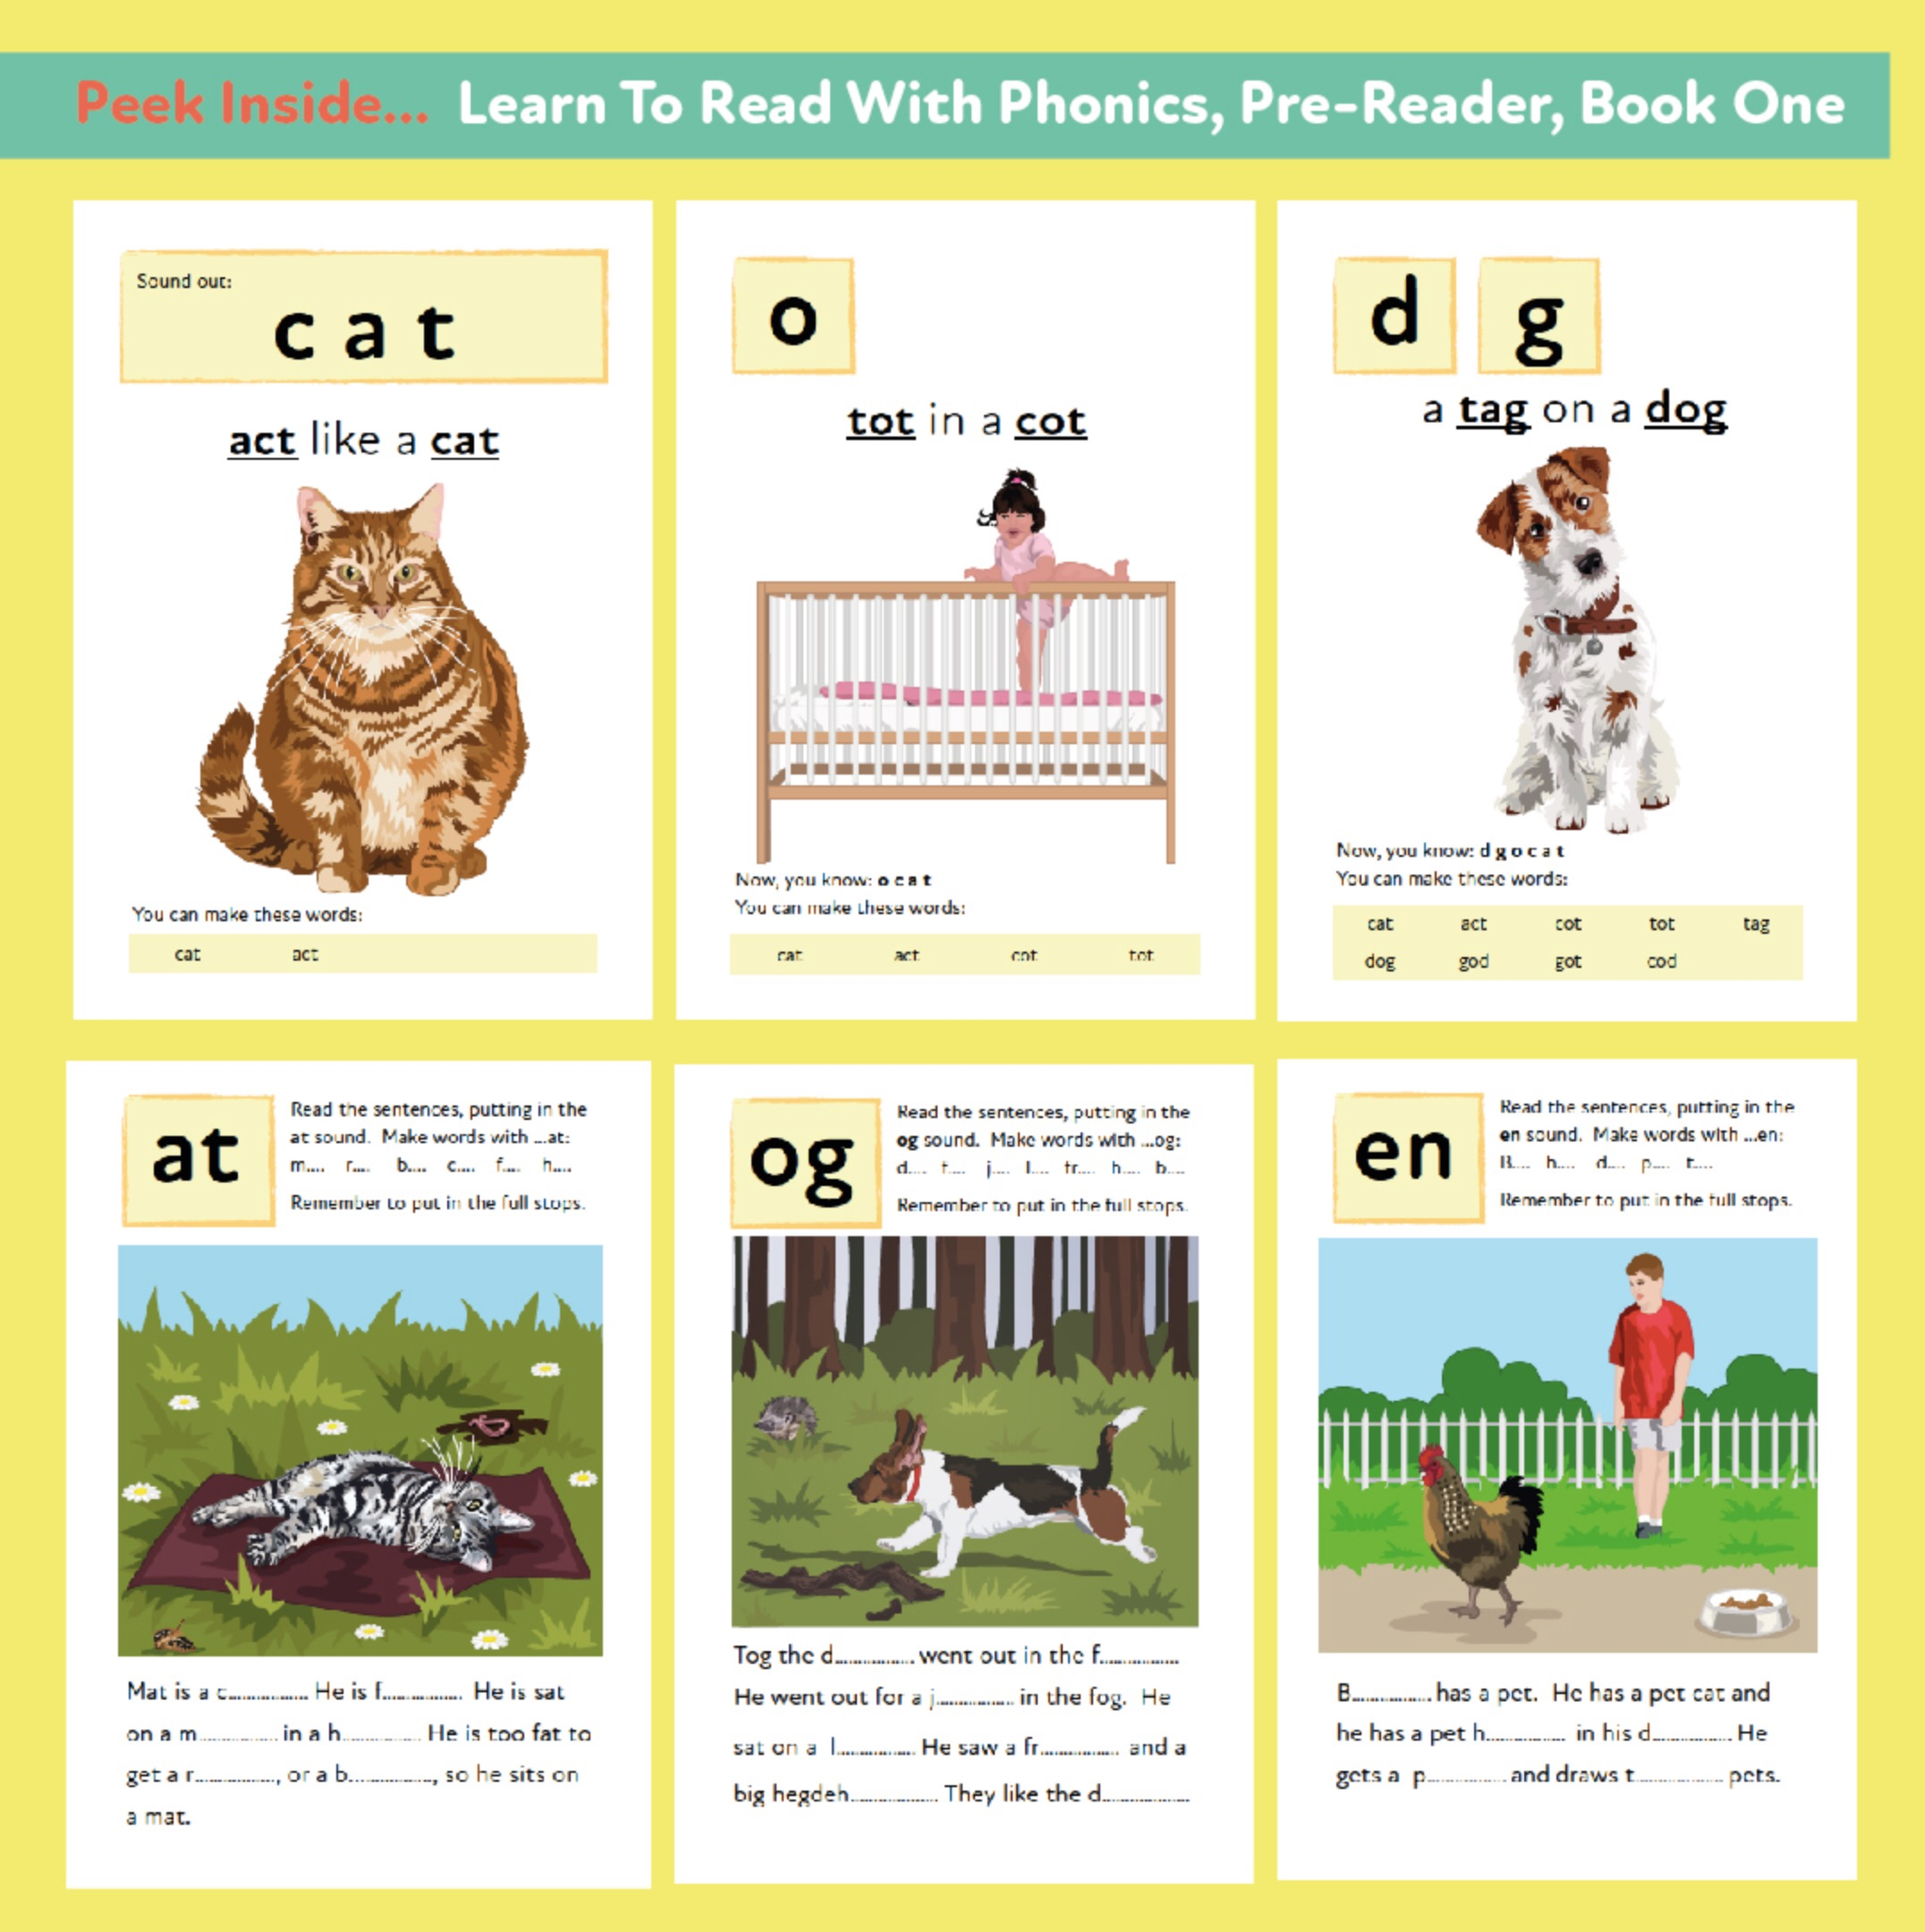 Learn to Read Rapidly with Phonics: Pre-Reader Book 1: Print Book